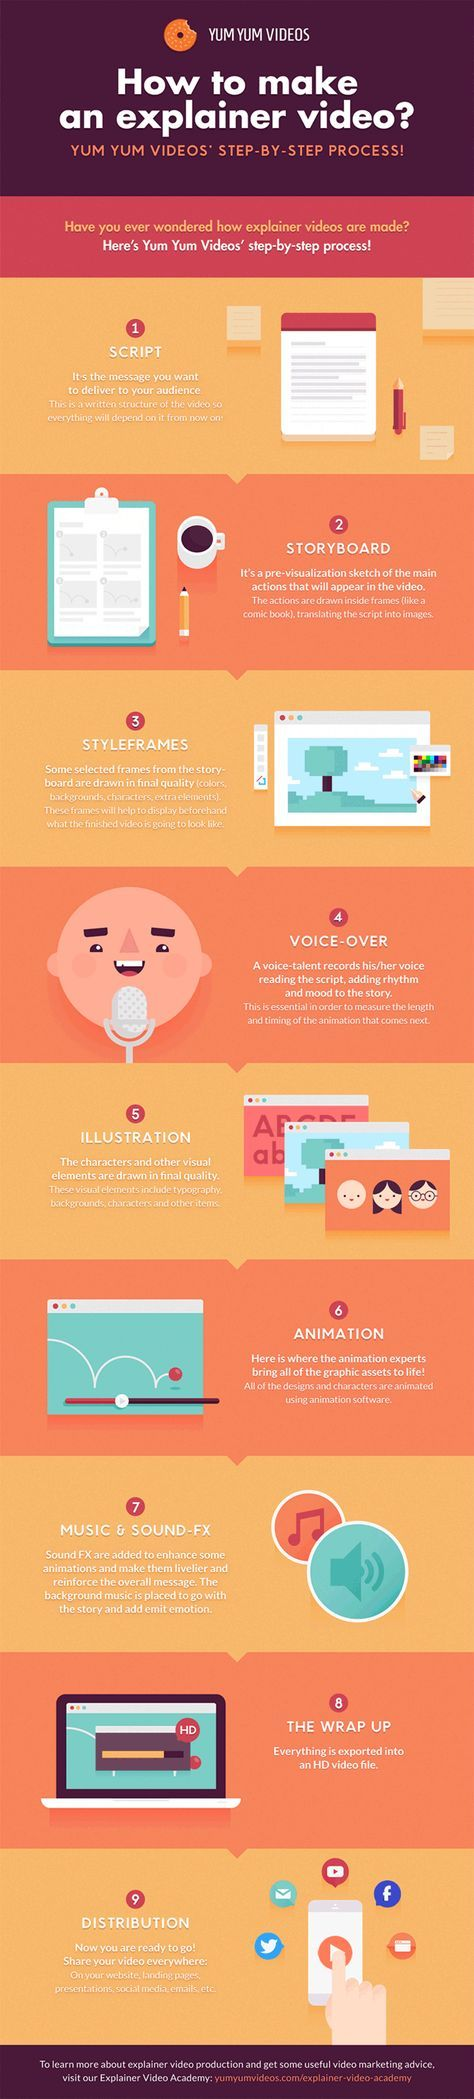 #infographic HOW TO MAKE AN ANIMATED EXPLAINER VIDEO STEP-BY-STEP